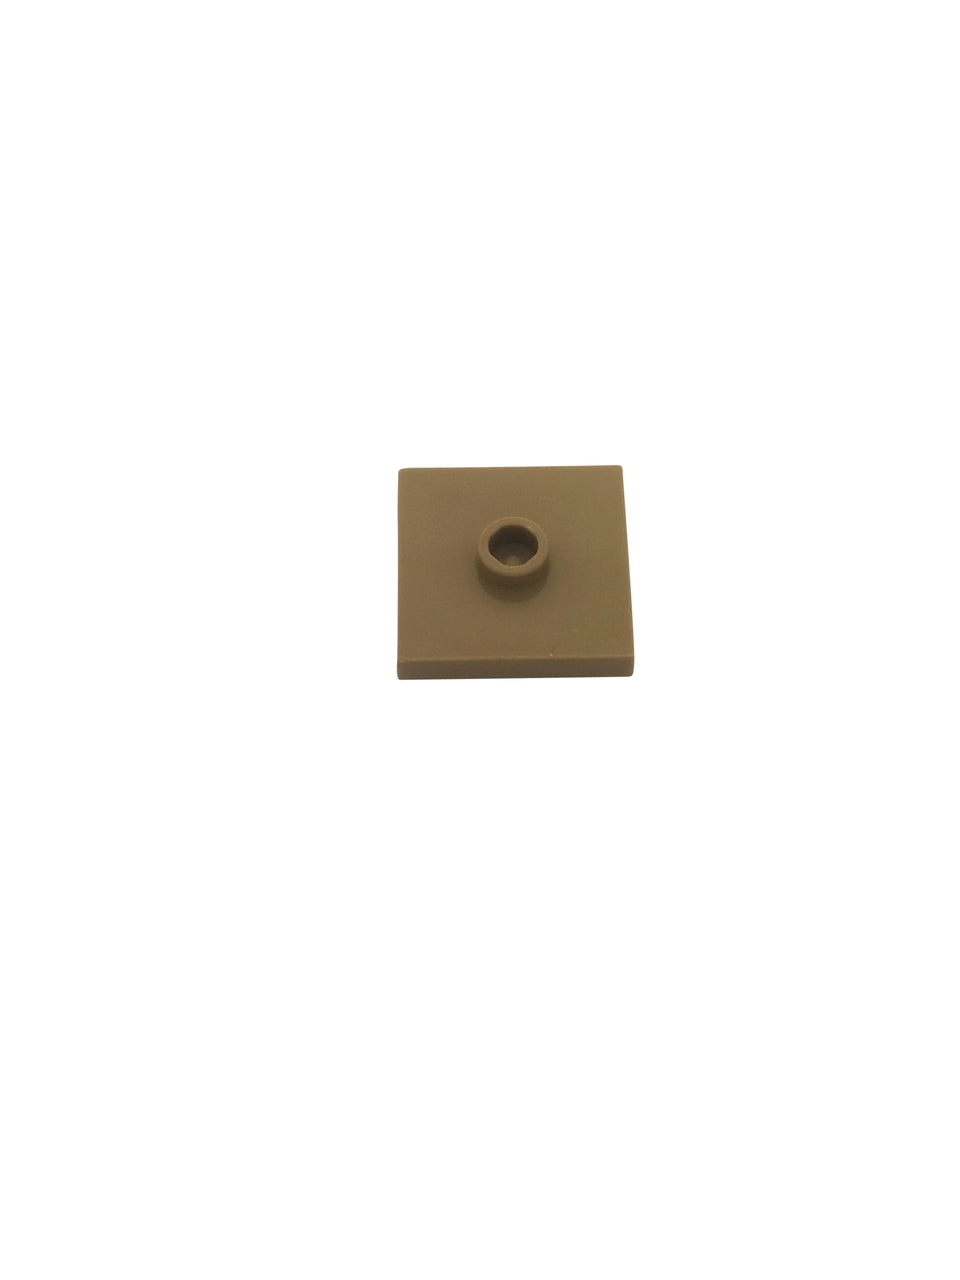 small brown plate  - lego